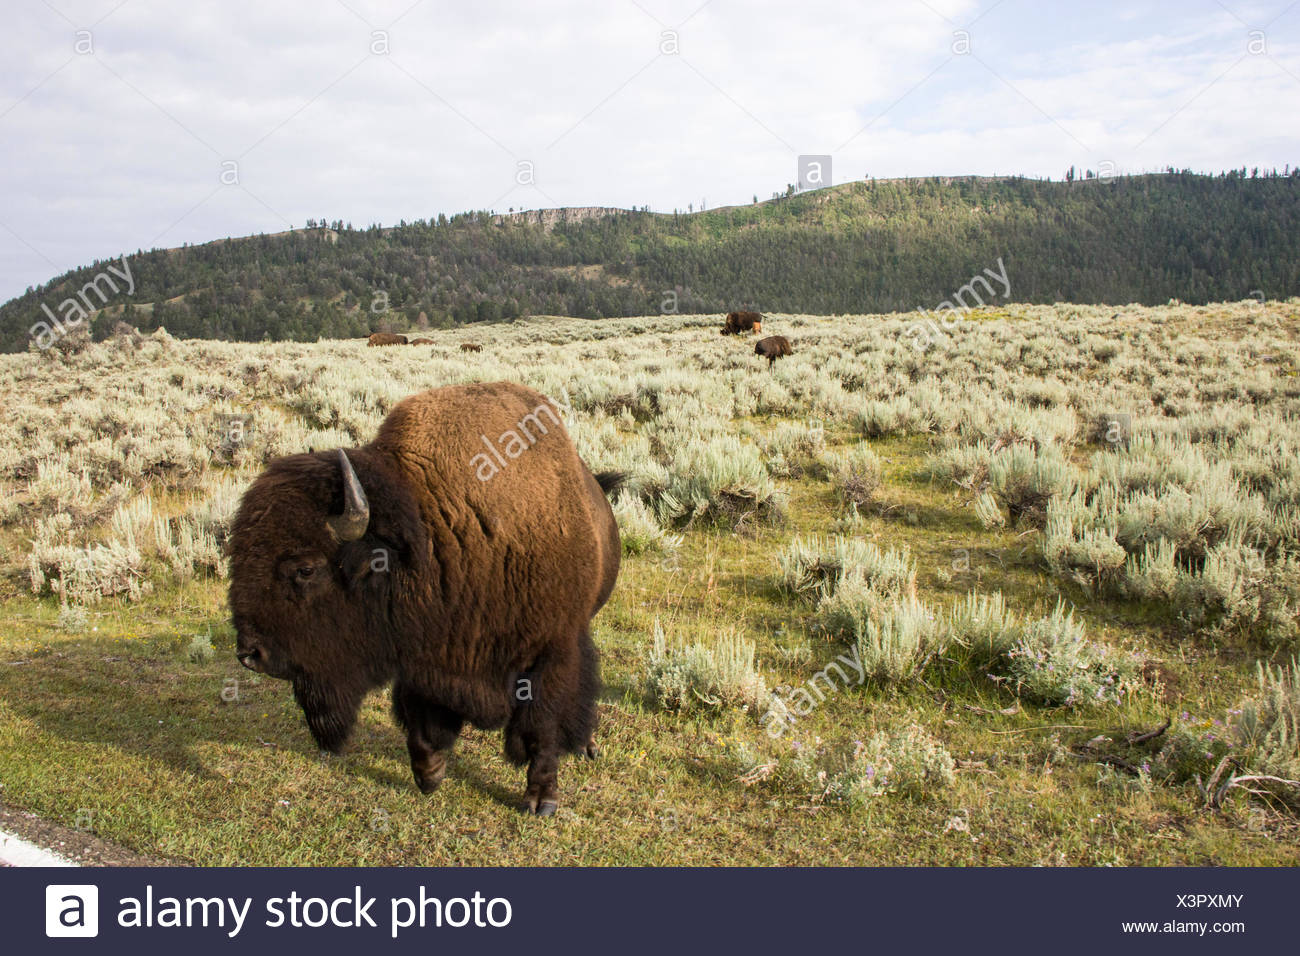 Bison roam in a field in the Lamar Valley. - Stock Image